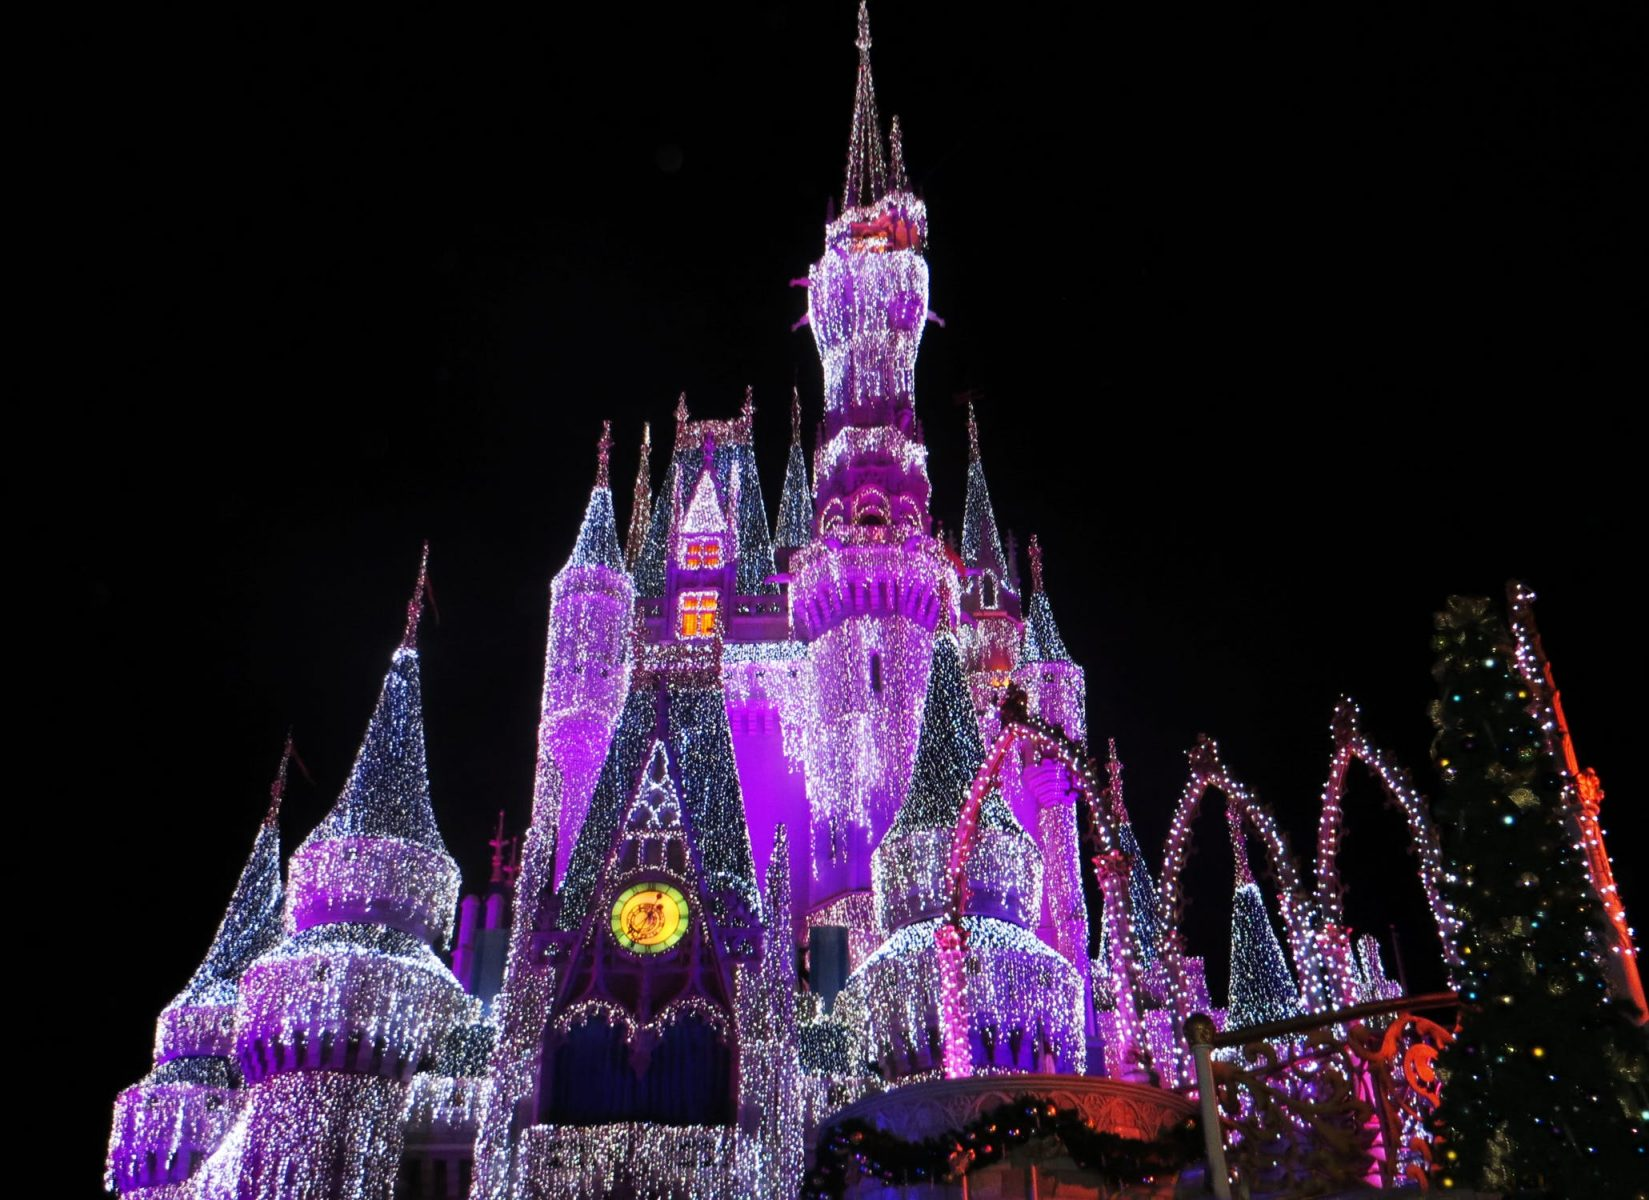 Planning a trip to Disney for a child with disabilities or medical needs